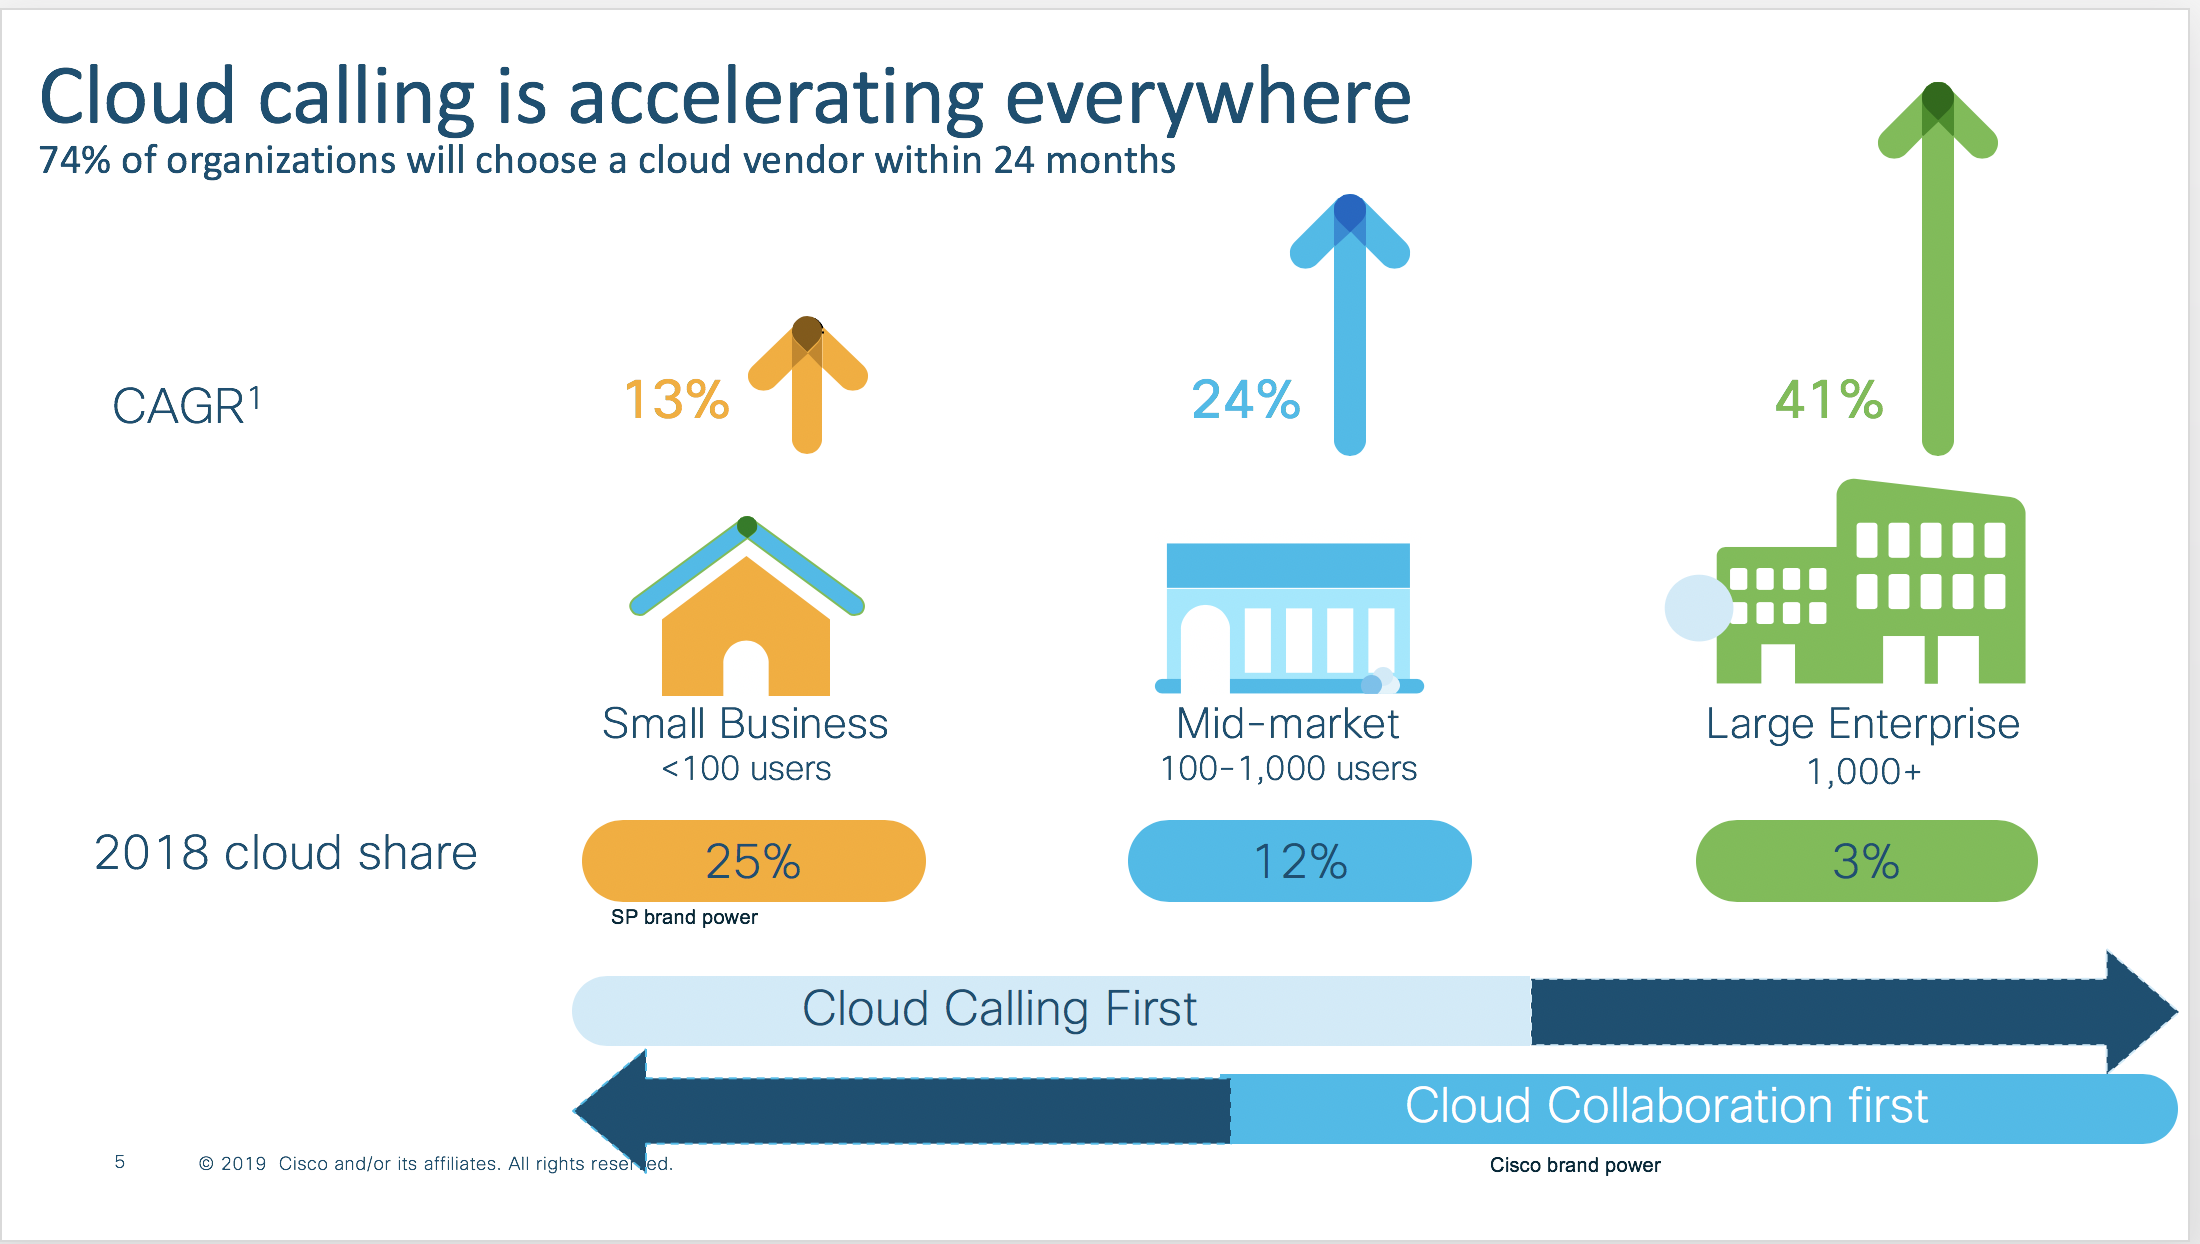 Cloud Calling is Accelerating Everywhere